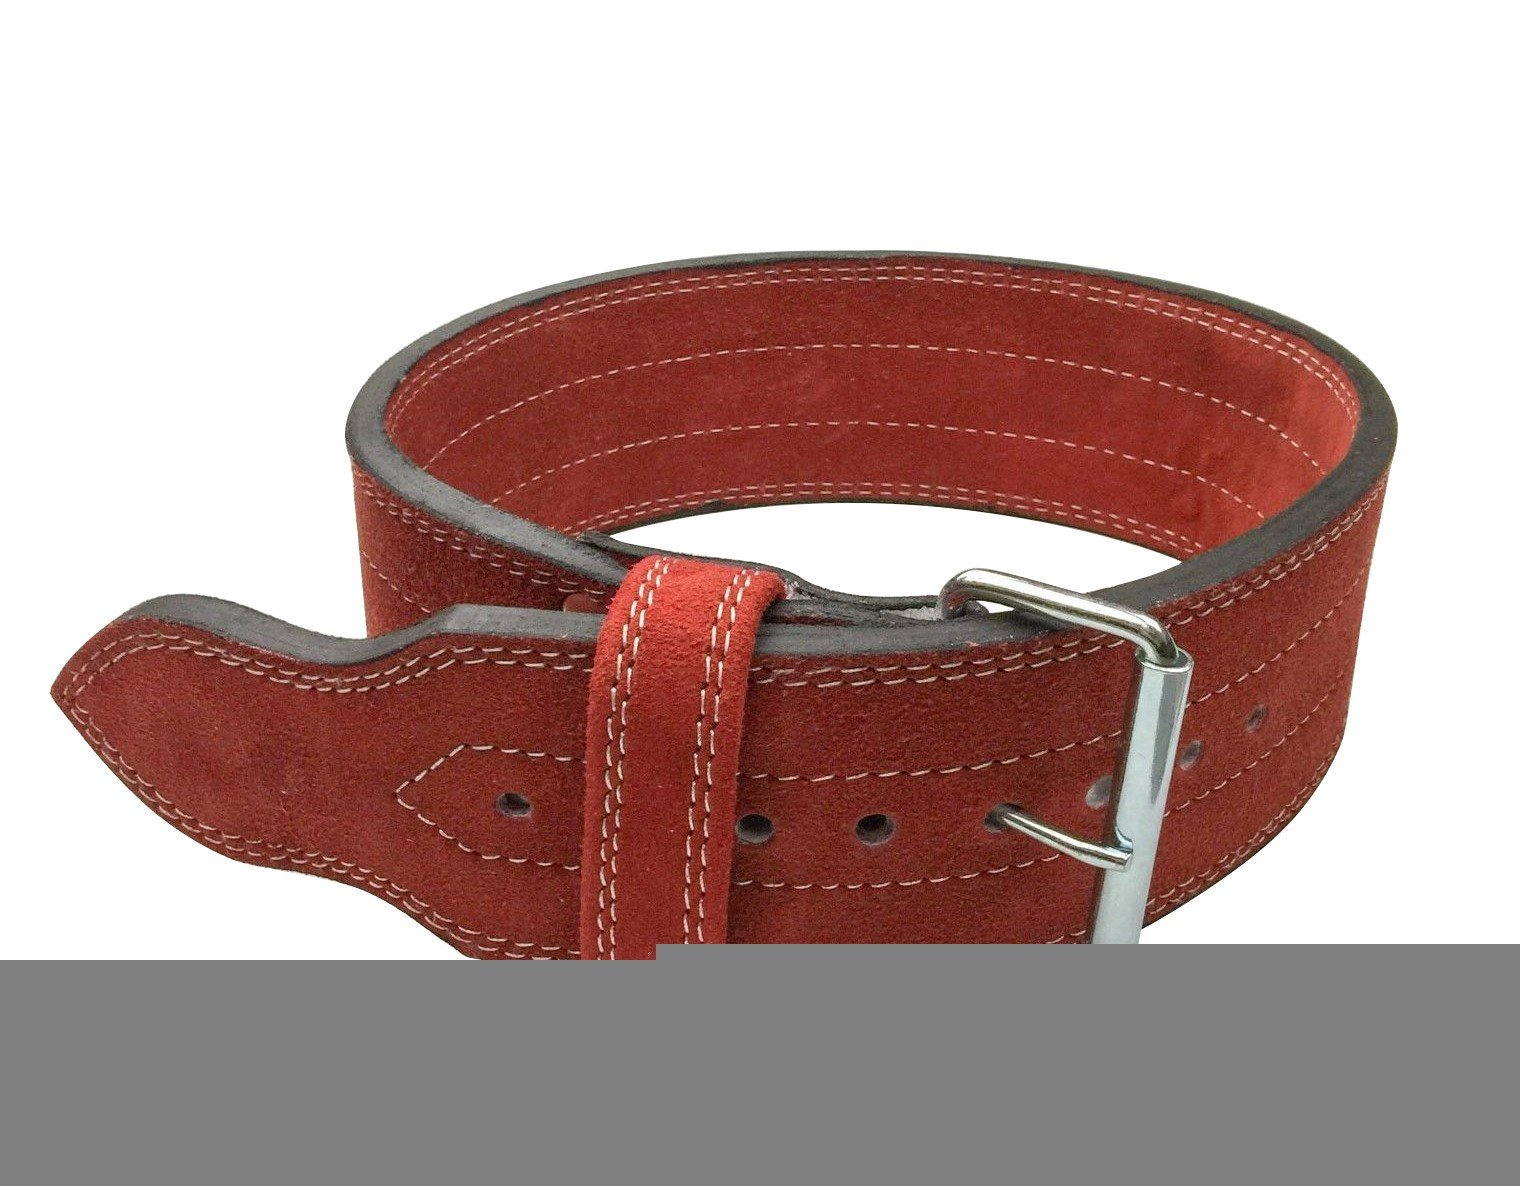 Flexz Fitness Single Prong Closure Powerlifting and Weightlifting Belt, 10mm, Red, Size Large